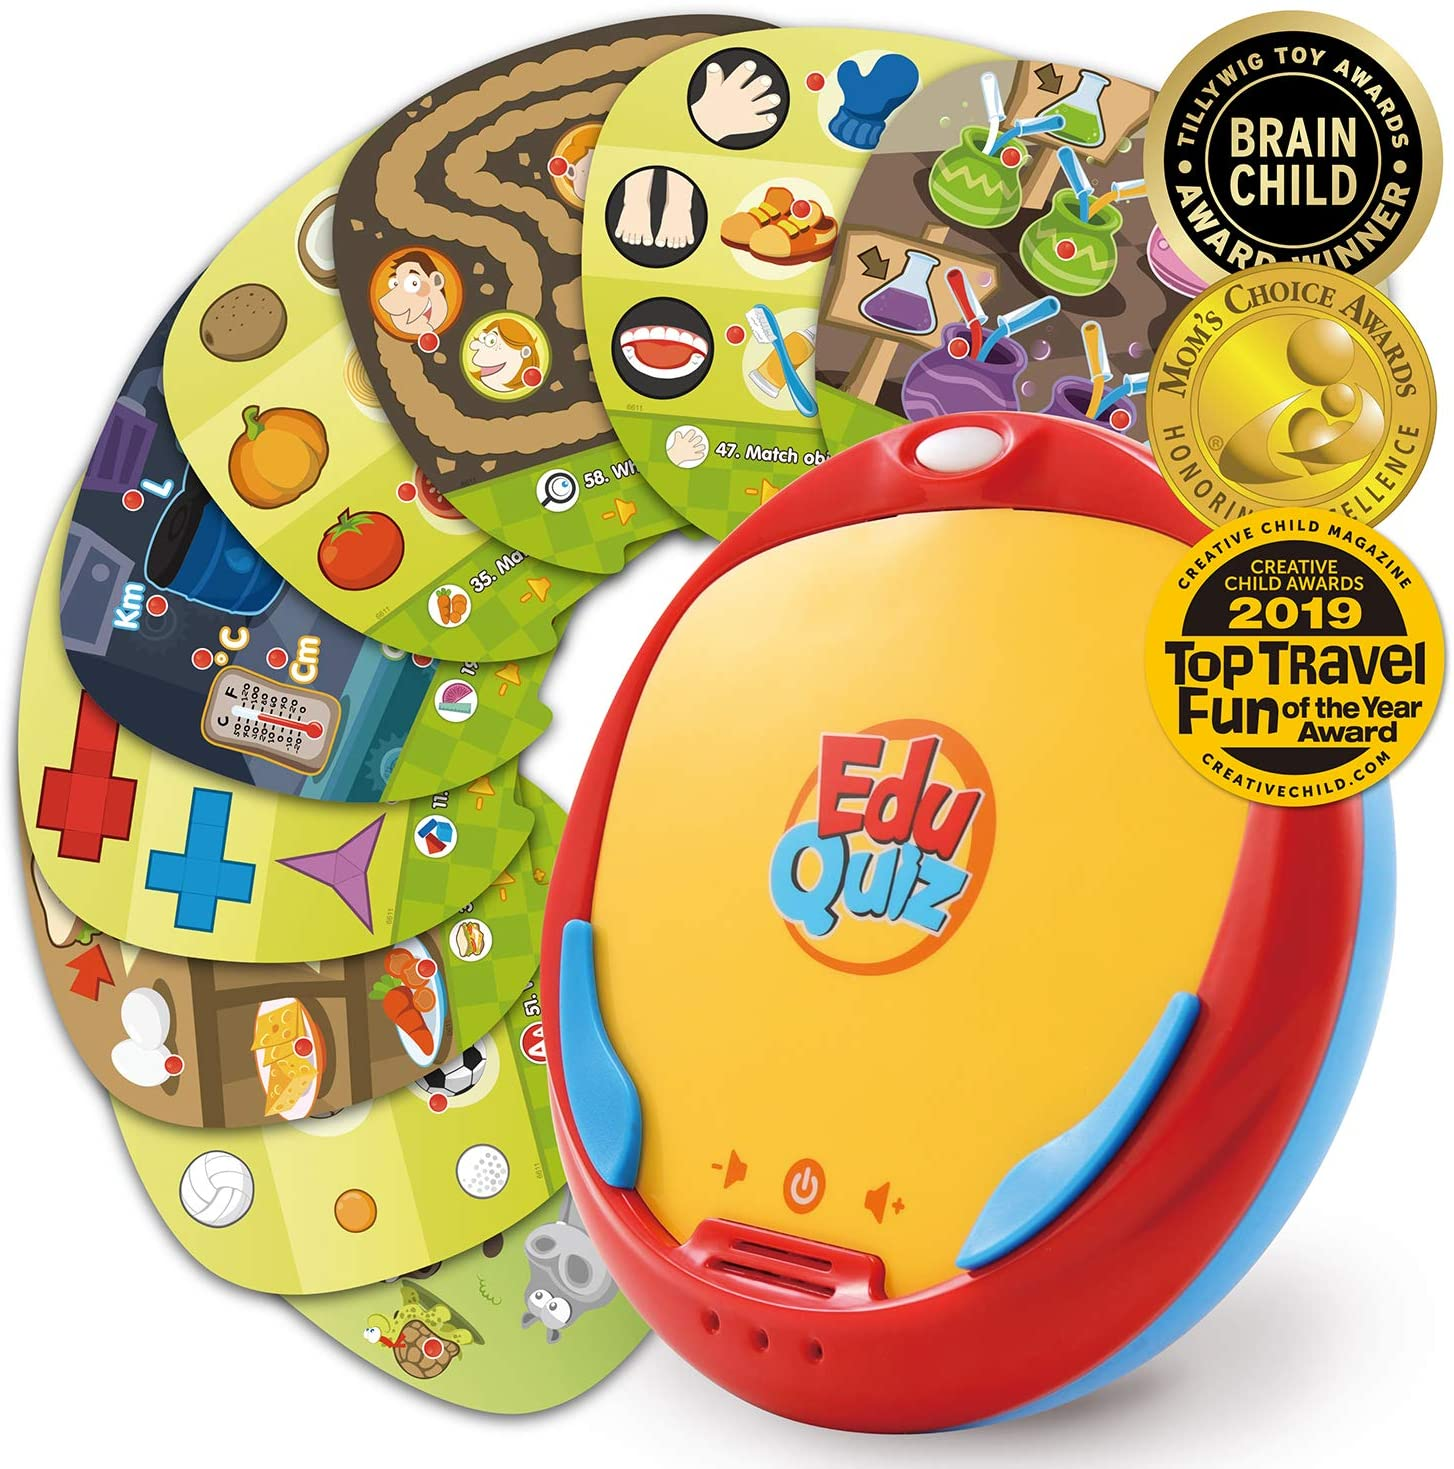 BEST LEARNING EduQuiz Basic Set I - Interactive Self Learning Educational Matching Toy for Kids Boys & Girls 3 4 5 6 Years Old